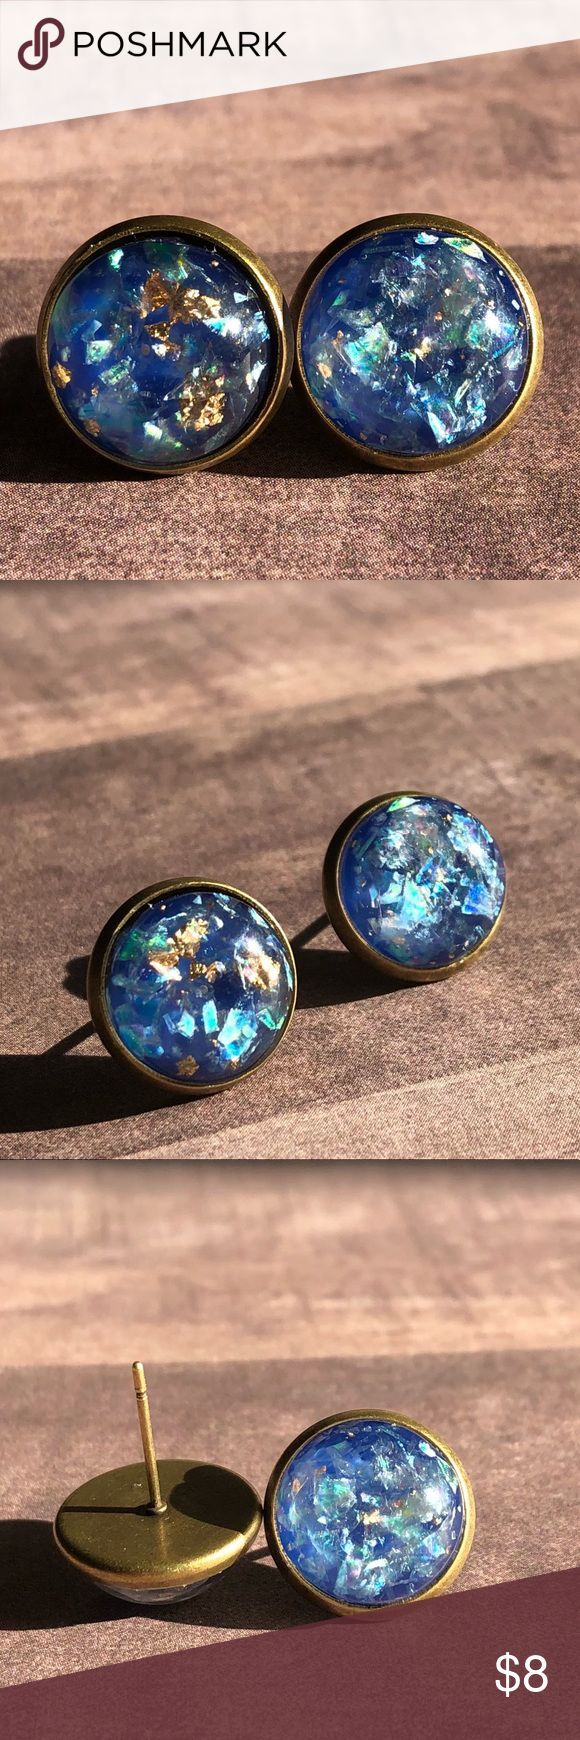 """🆕Blue Opal Gold Metal Stone Bronze Stud Earrings! New, Handmade by Me! 🆕Style! Opal Stone mixed with Gold Metal! Listing in White, Black & Dark Blue; This listing is for the Blue Stone in Antique Bronze Post Backs; Approx. 12mm or 1/2"""" Size; Can make in any Style Back Shown!📸These are my pic's of the Actual items!  ▶️1 For $8, 2 For $13, 3 For $15!◀️  ▪️3-$15 is only for items listed as such▪️ ▪️Post Back for Pierced Ears ▪️Nickel, Lead & Cadmium Free  *NO TRADES *Price is FIRM as Listed…"""